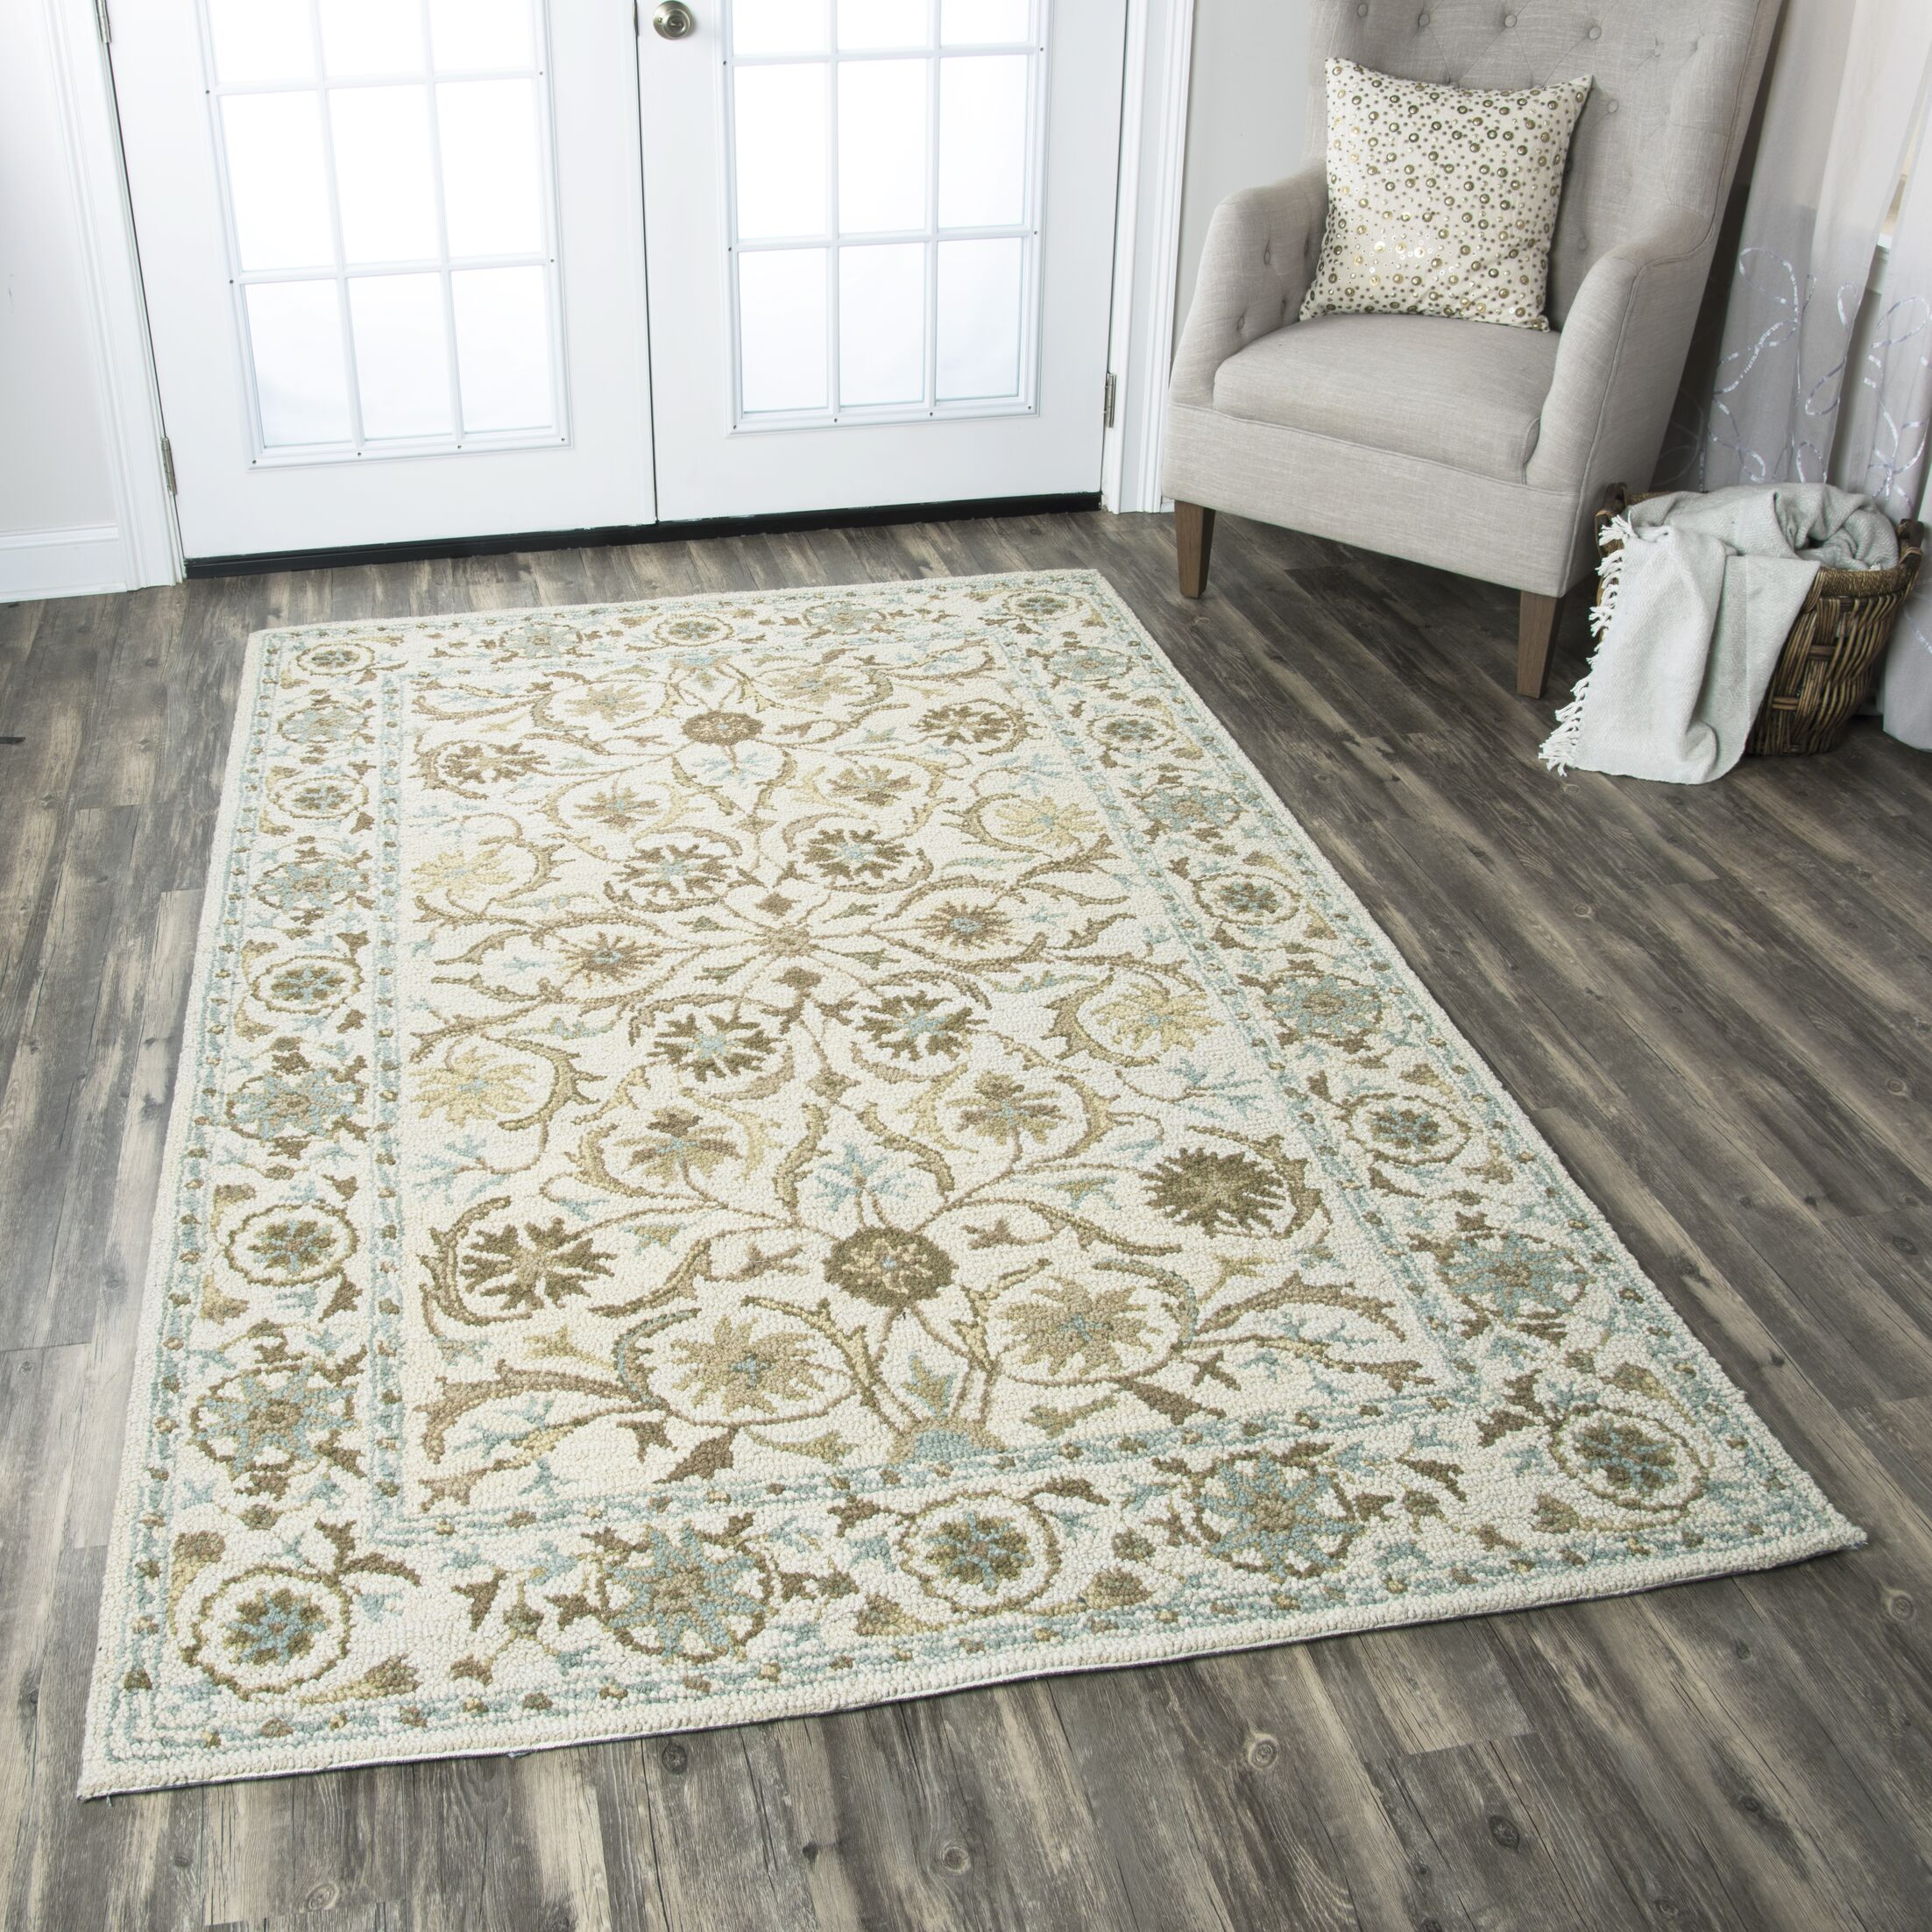 Suzanne Tufted Wool Area Rug Rug Size: Rectangle 8' x 10'